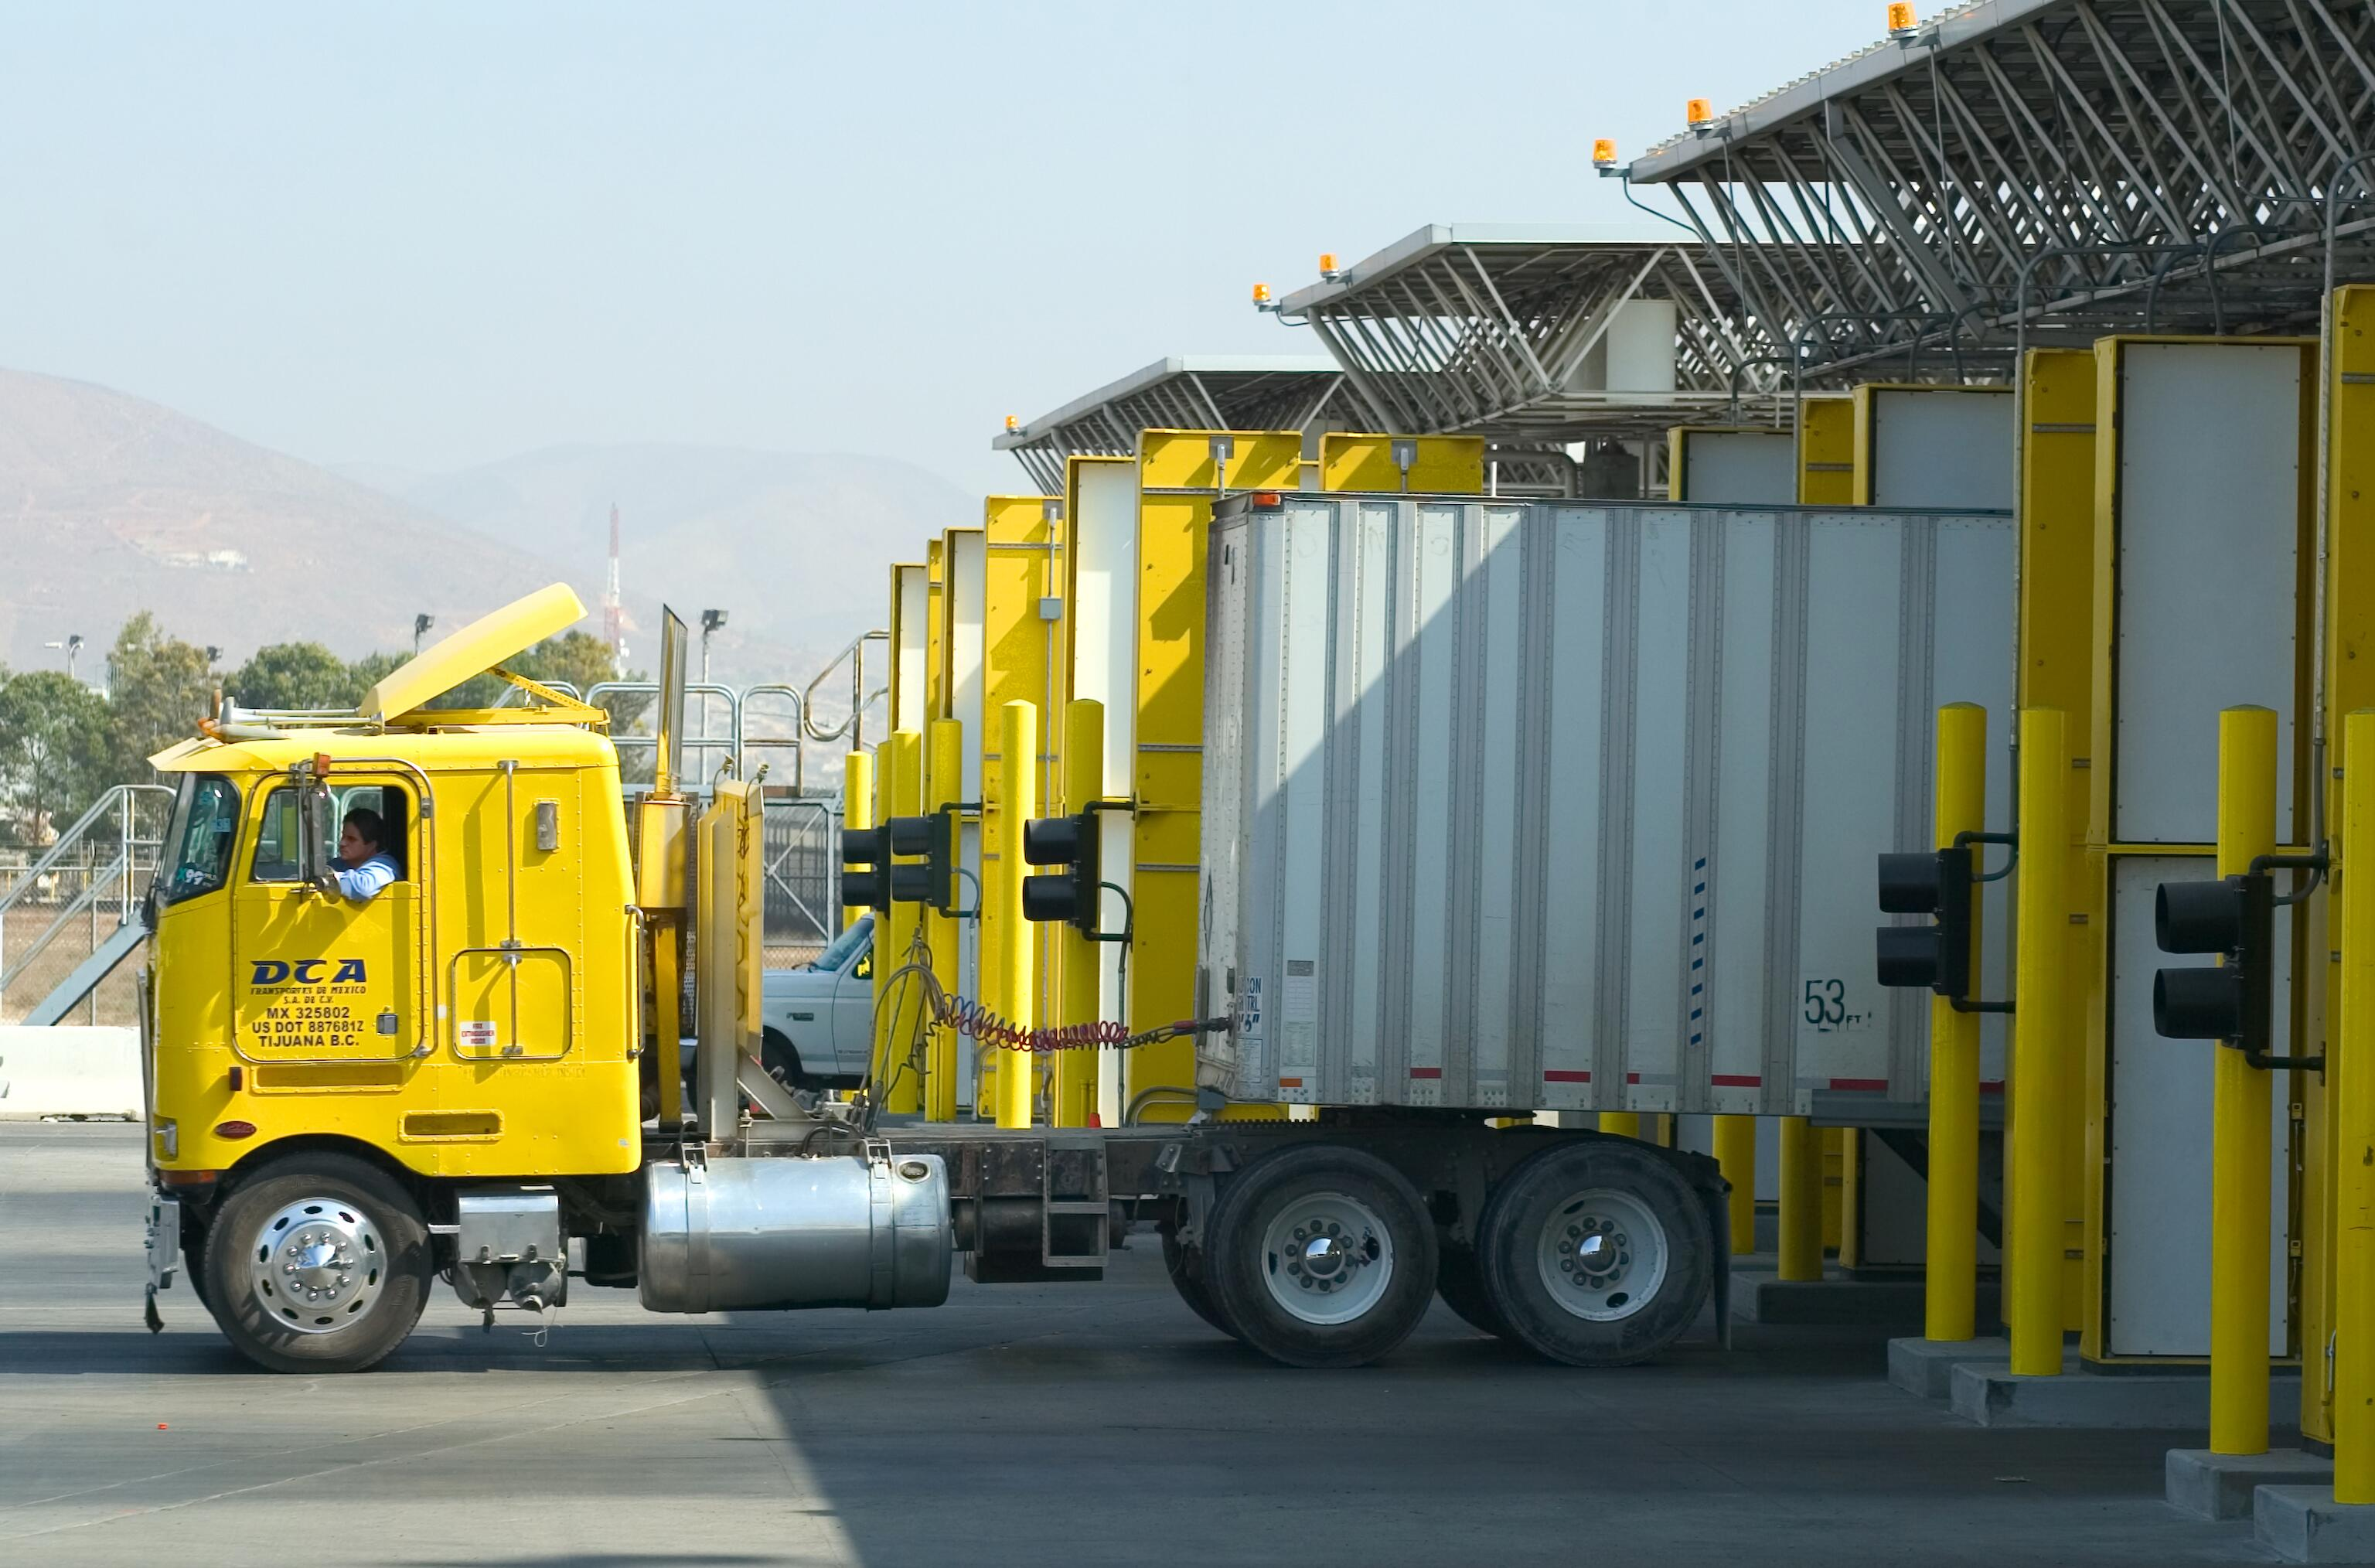 Trucks bring products into the U.S. through the Otay Mesa border crossing where CBP Agriculture Specialists inspect their cargo.